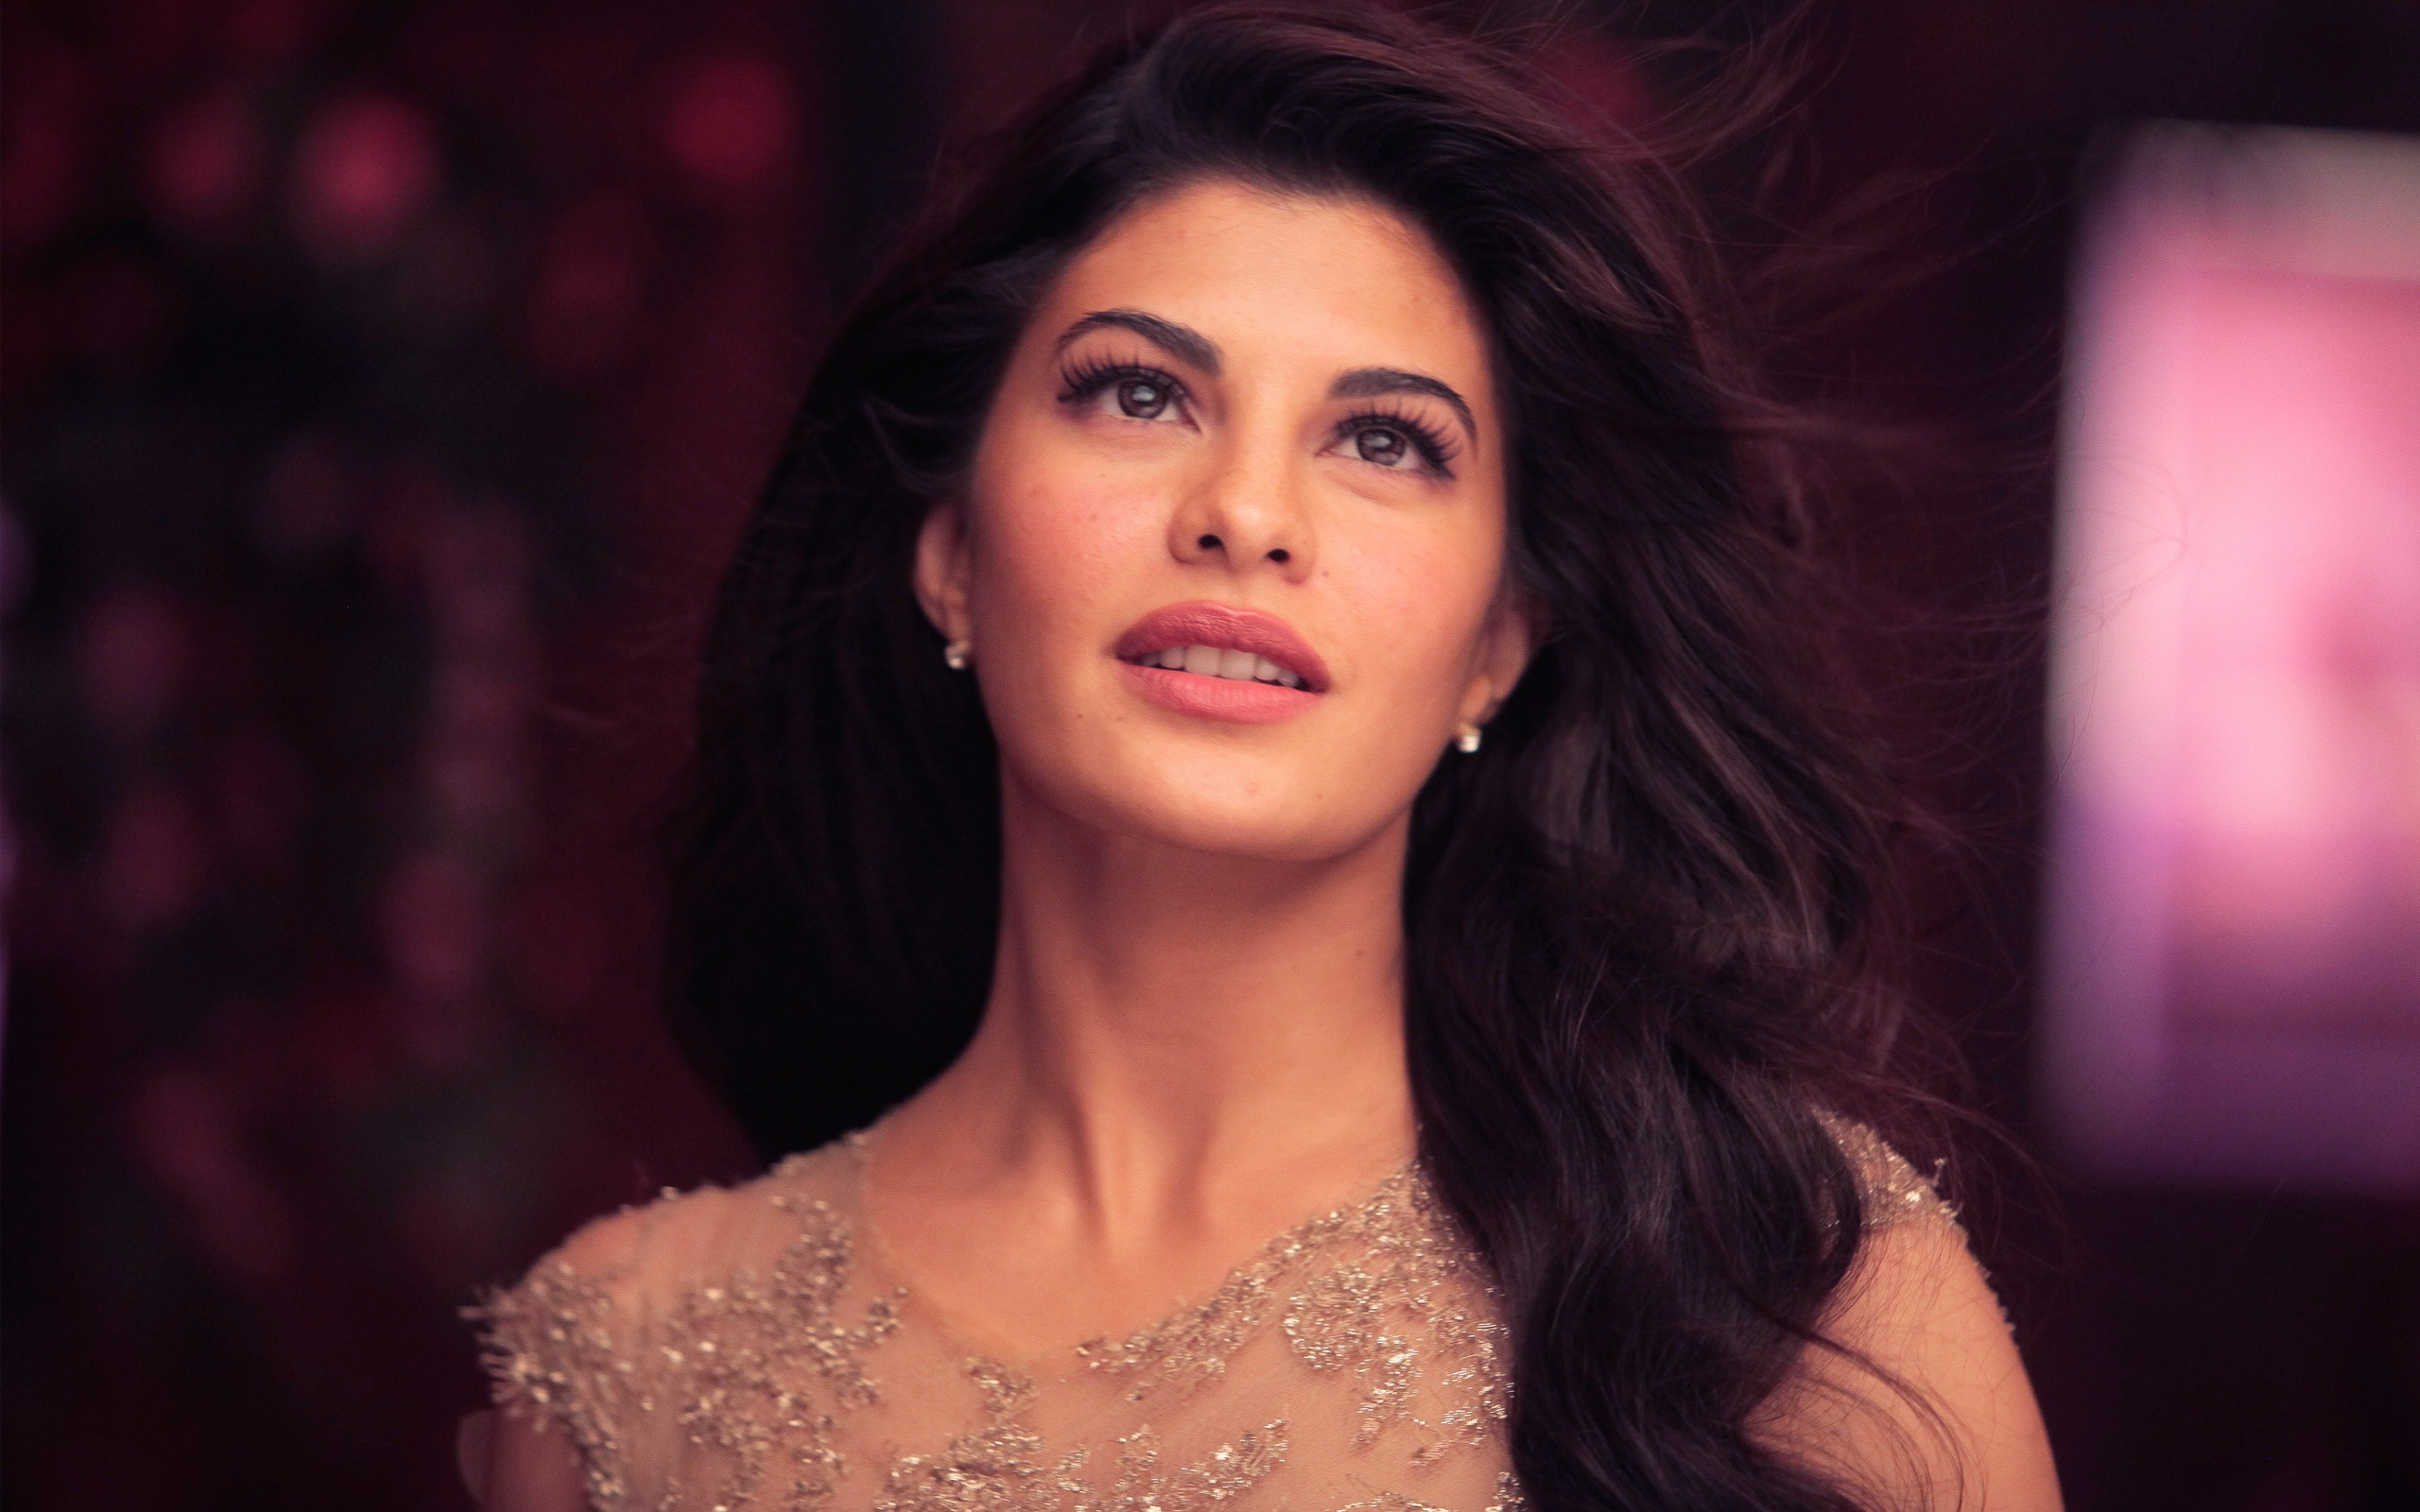 jacqueline fernandez in kick wallpapers in jpg format for free download all free download com